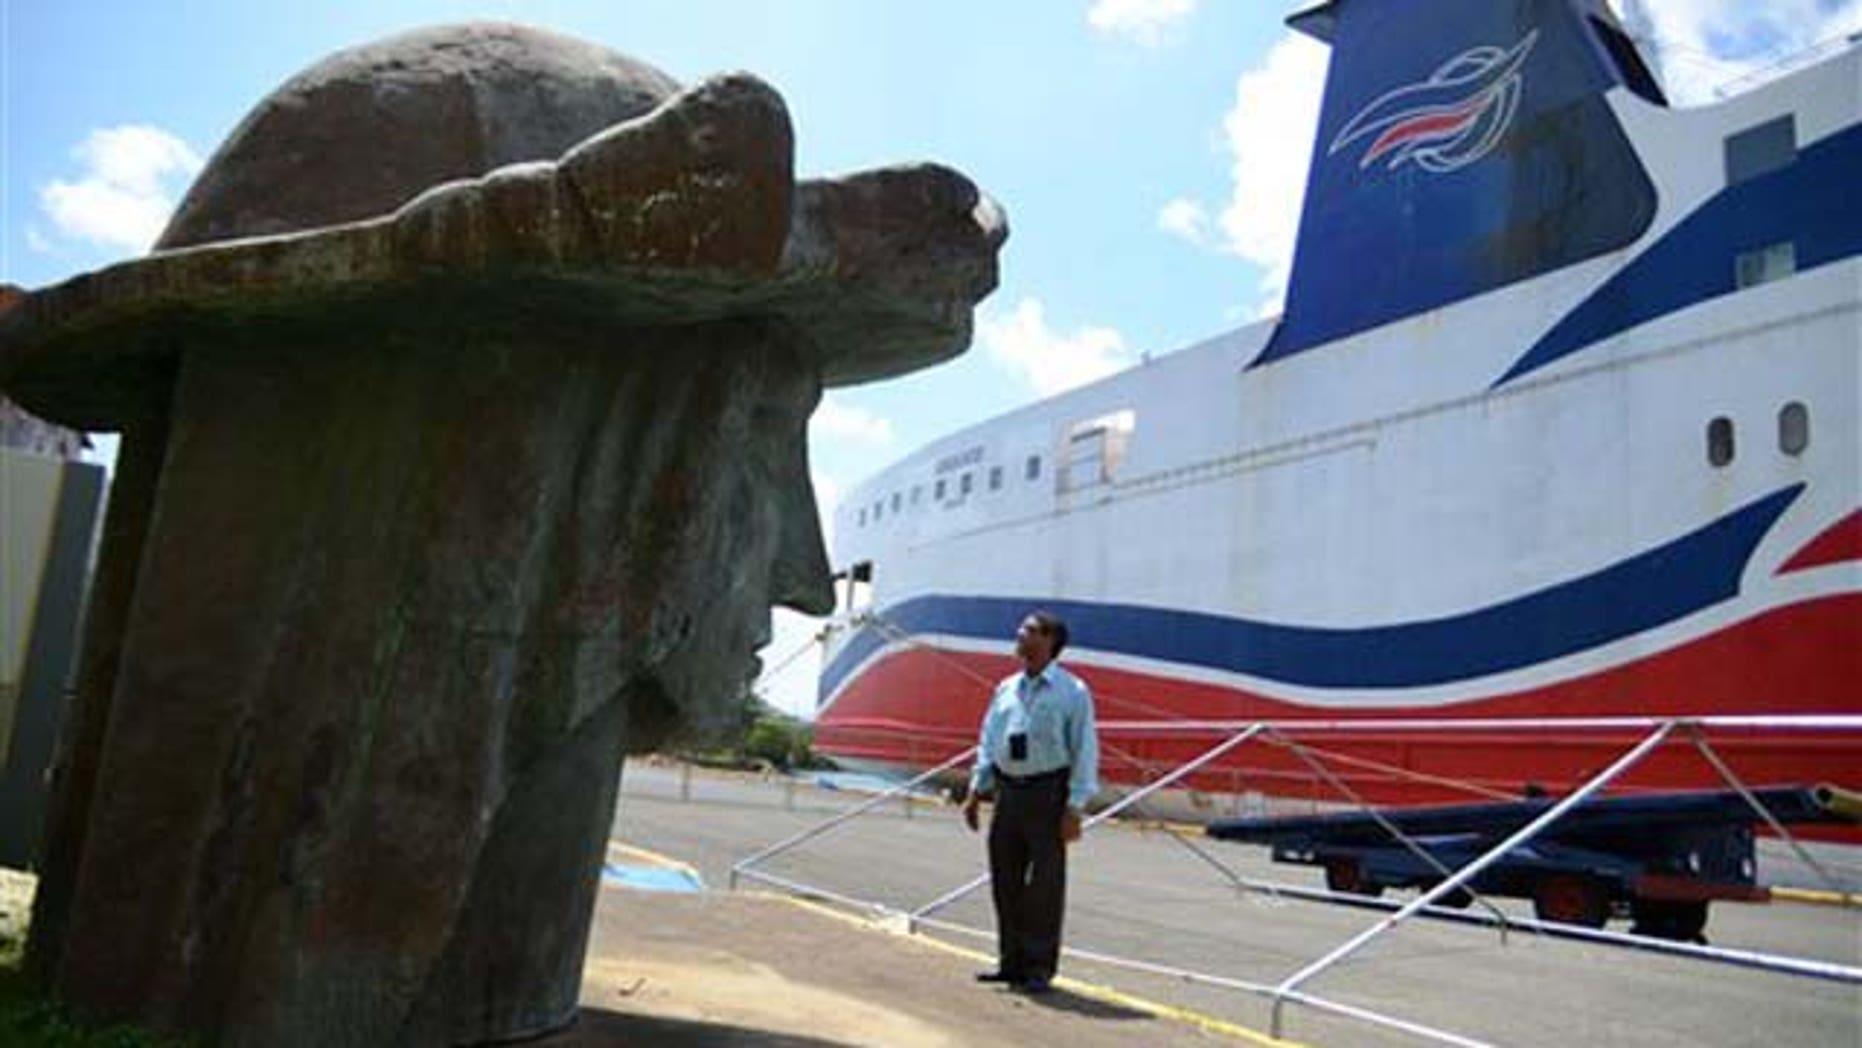 Sept. 2, 2011: Tony Jacobs, director of the port of Mayaguez, looks at the head of a statue of Christopher Columbus, one of many pieces strewn across the port storage area in Mayaguez, Puerto Rico.